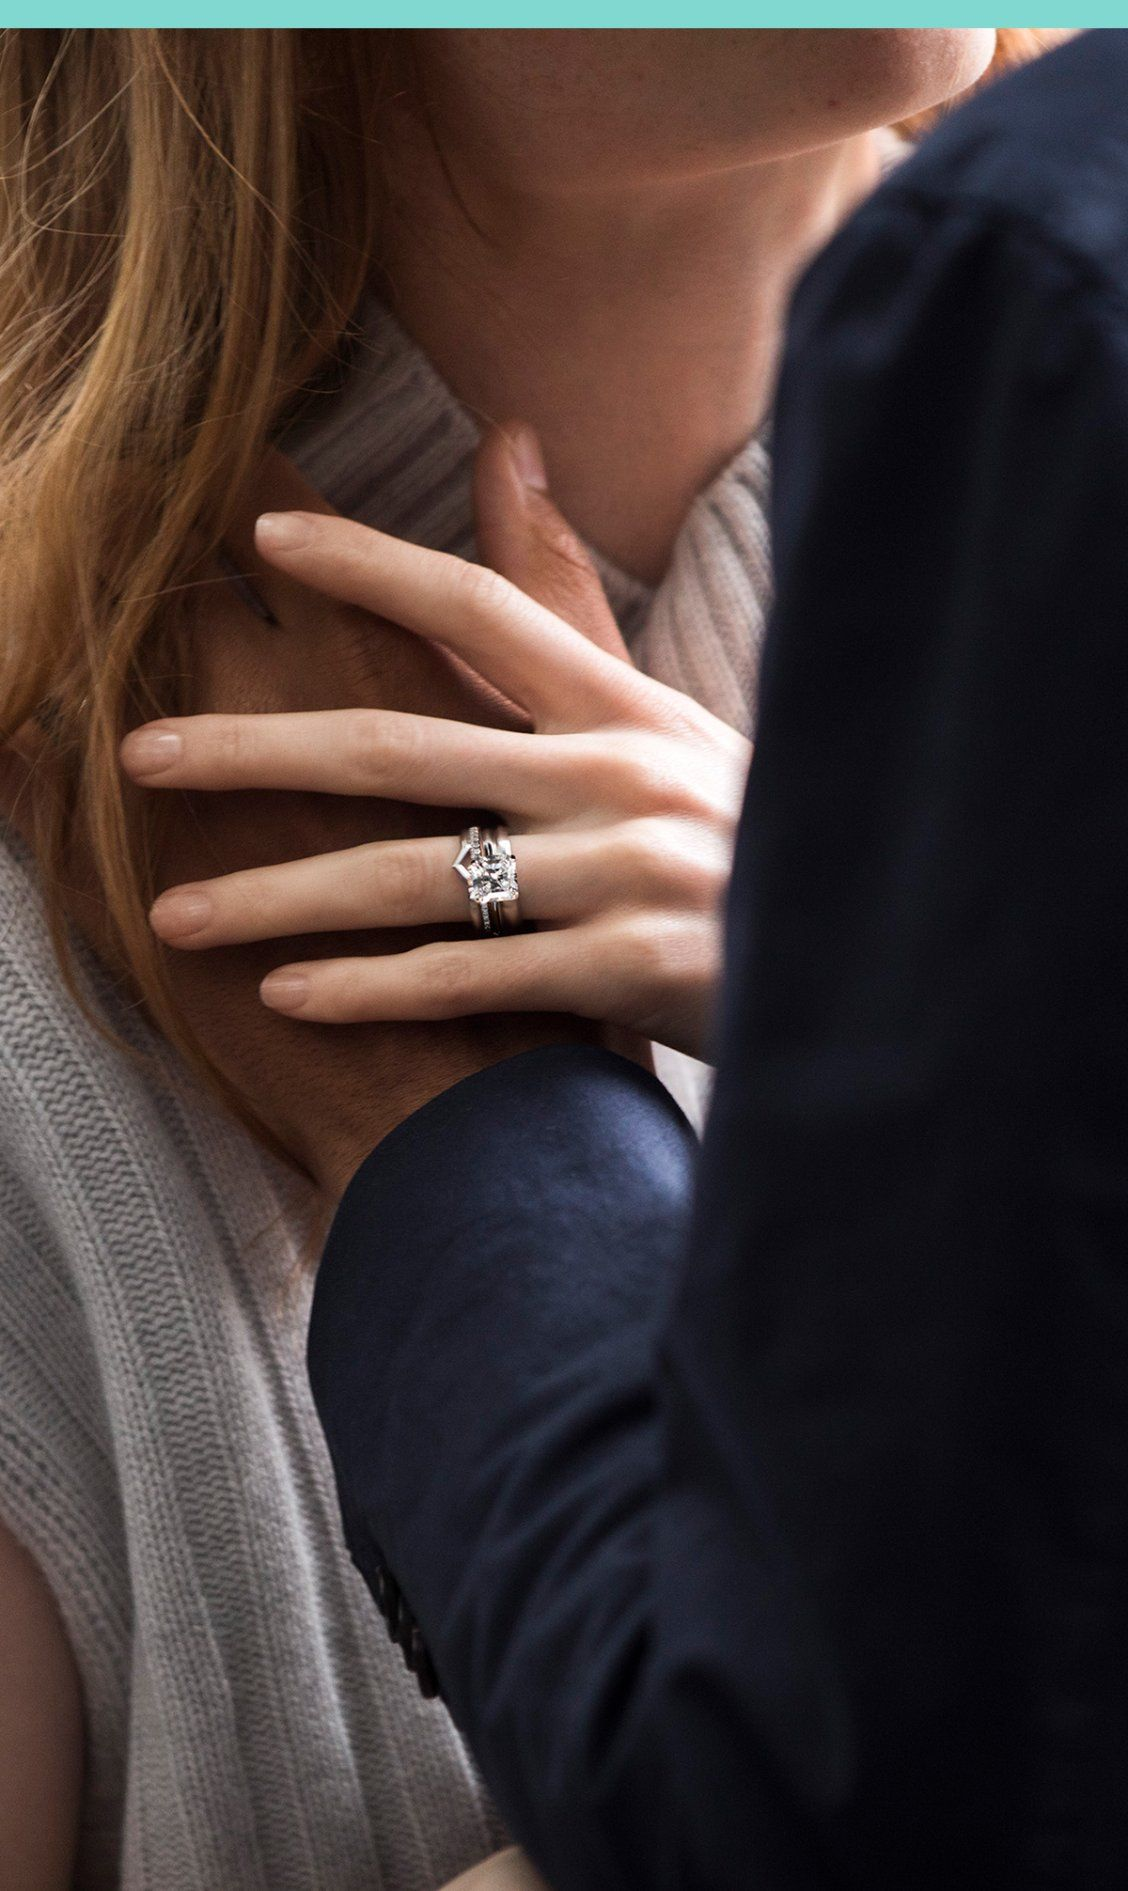 b4db380cde4eaf The one you've been waiting for. Introducing Tiffany True—our first new engagement  ring design in nearly a decade, available in platinum and 18k gold.